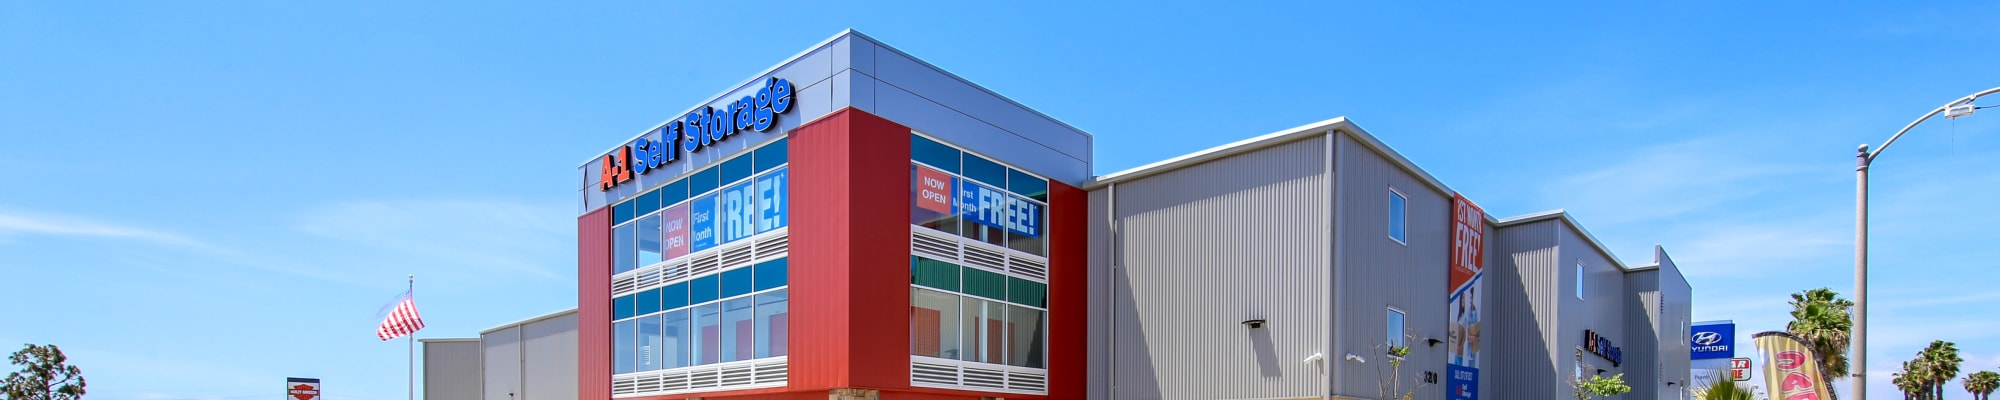 Directions to A-1 Self Storage in San Diego, California